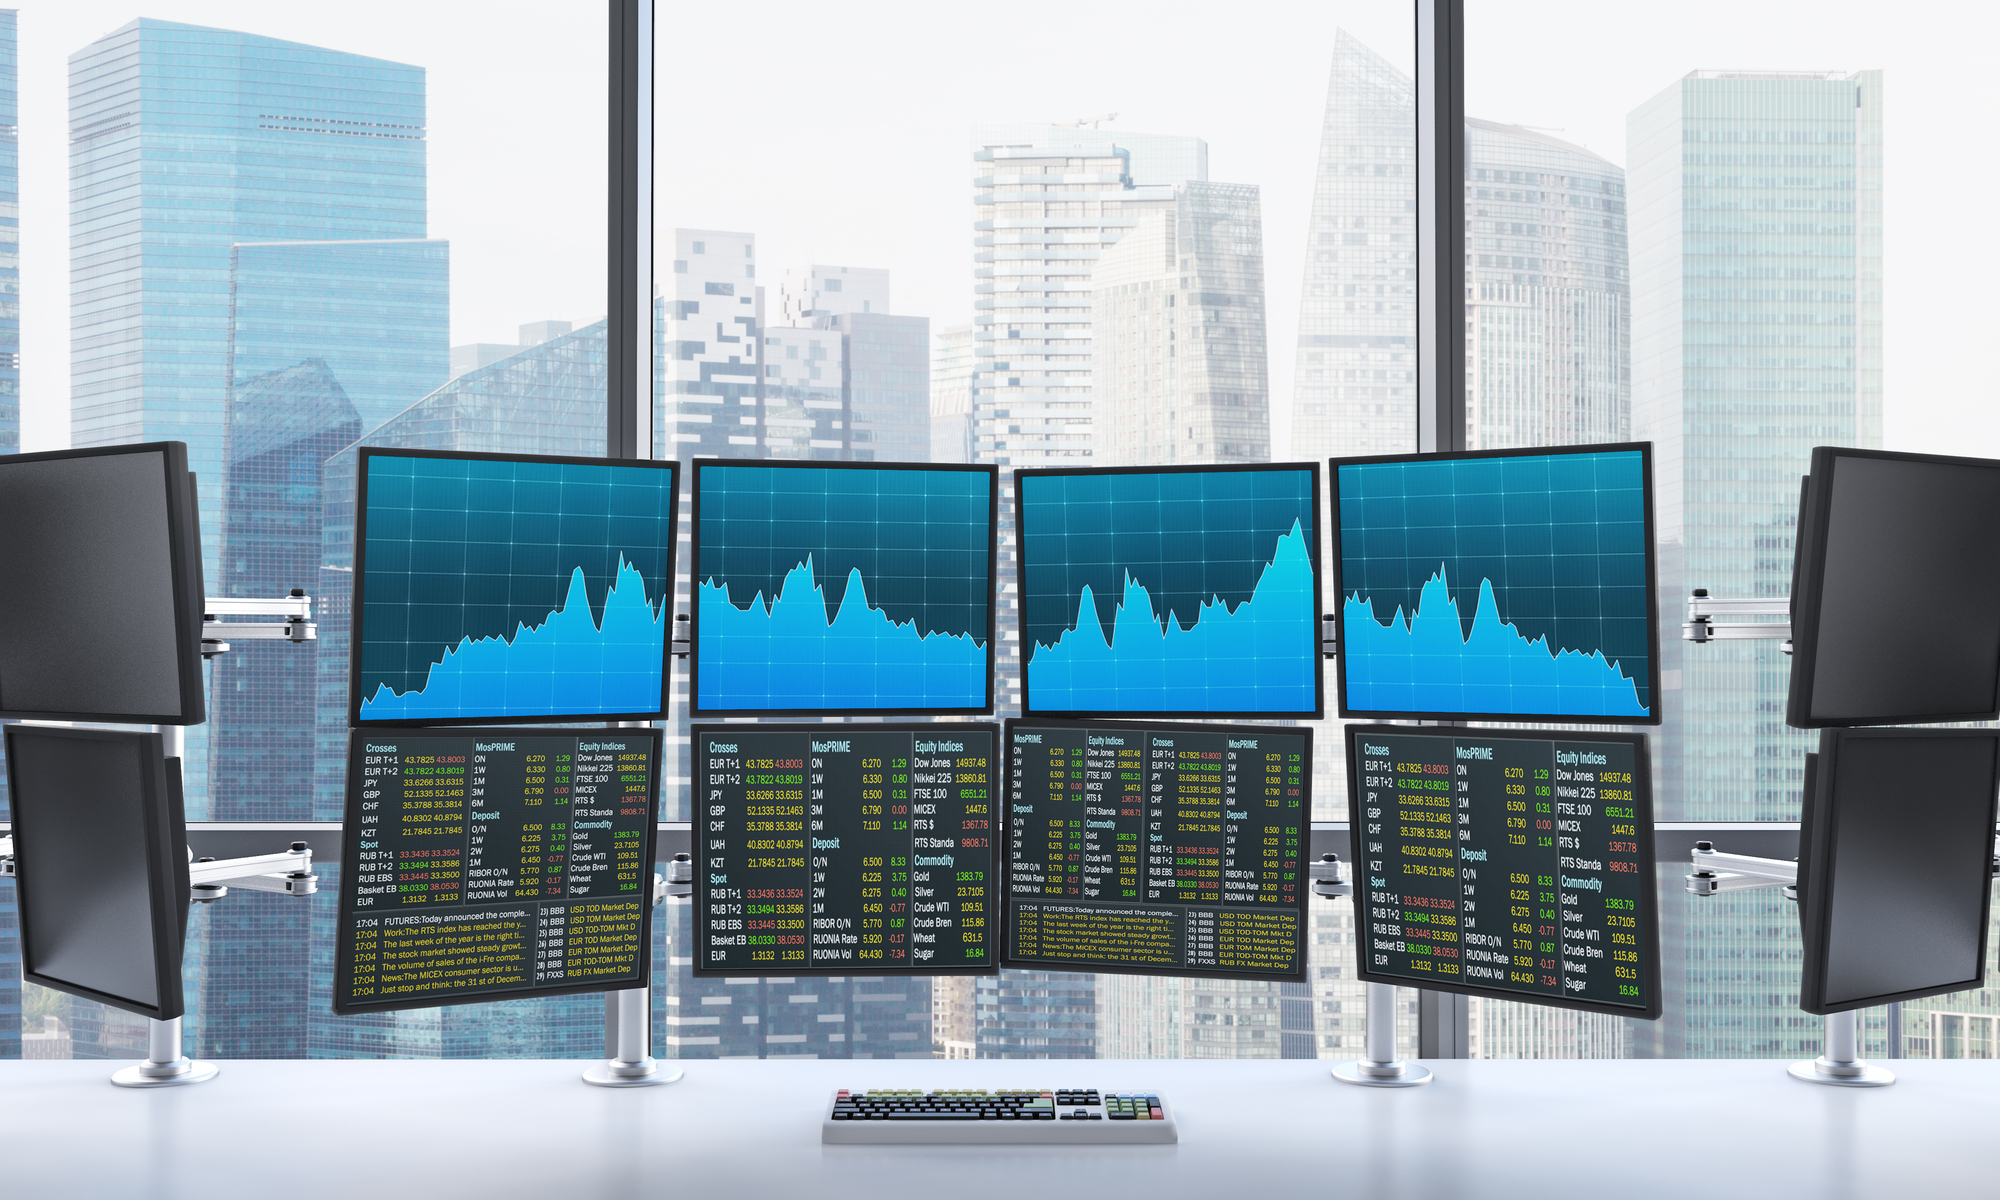 3D rendering of office with switched on monitors, processing data for trading, front view, window at the background, singapore